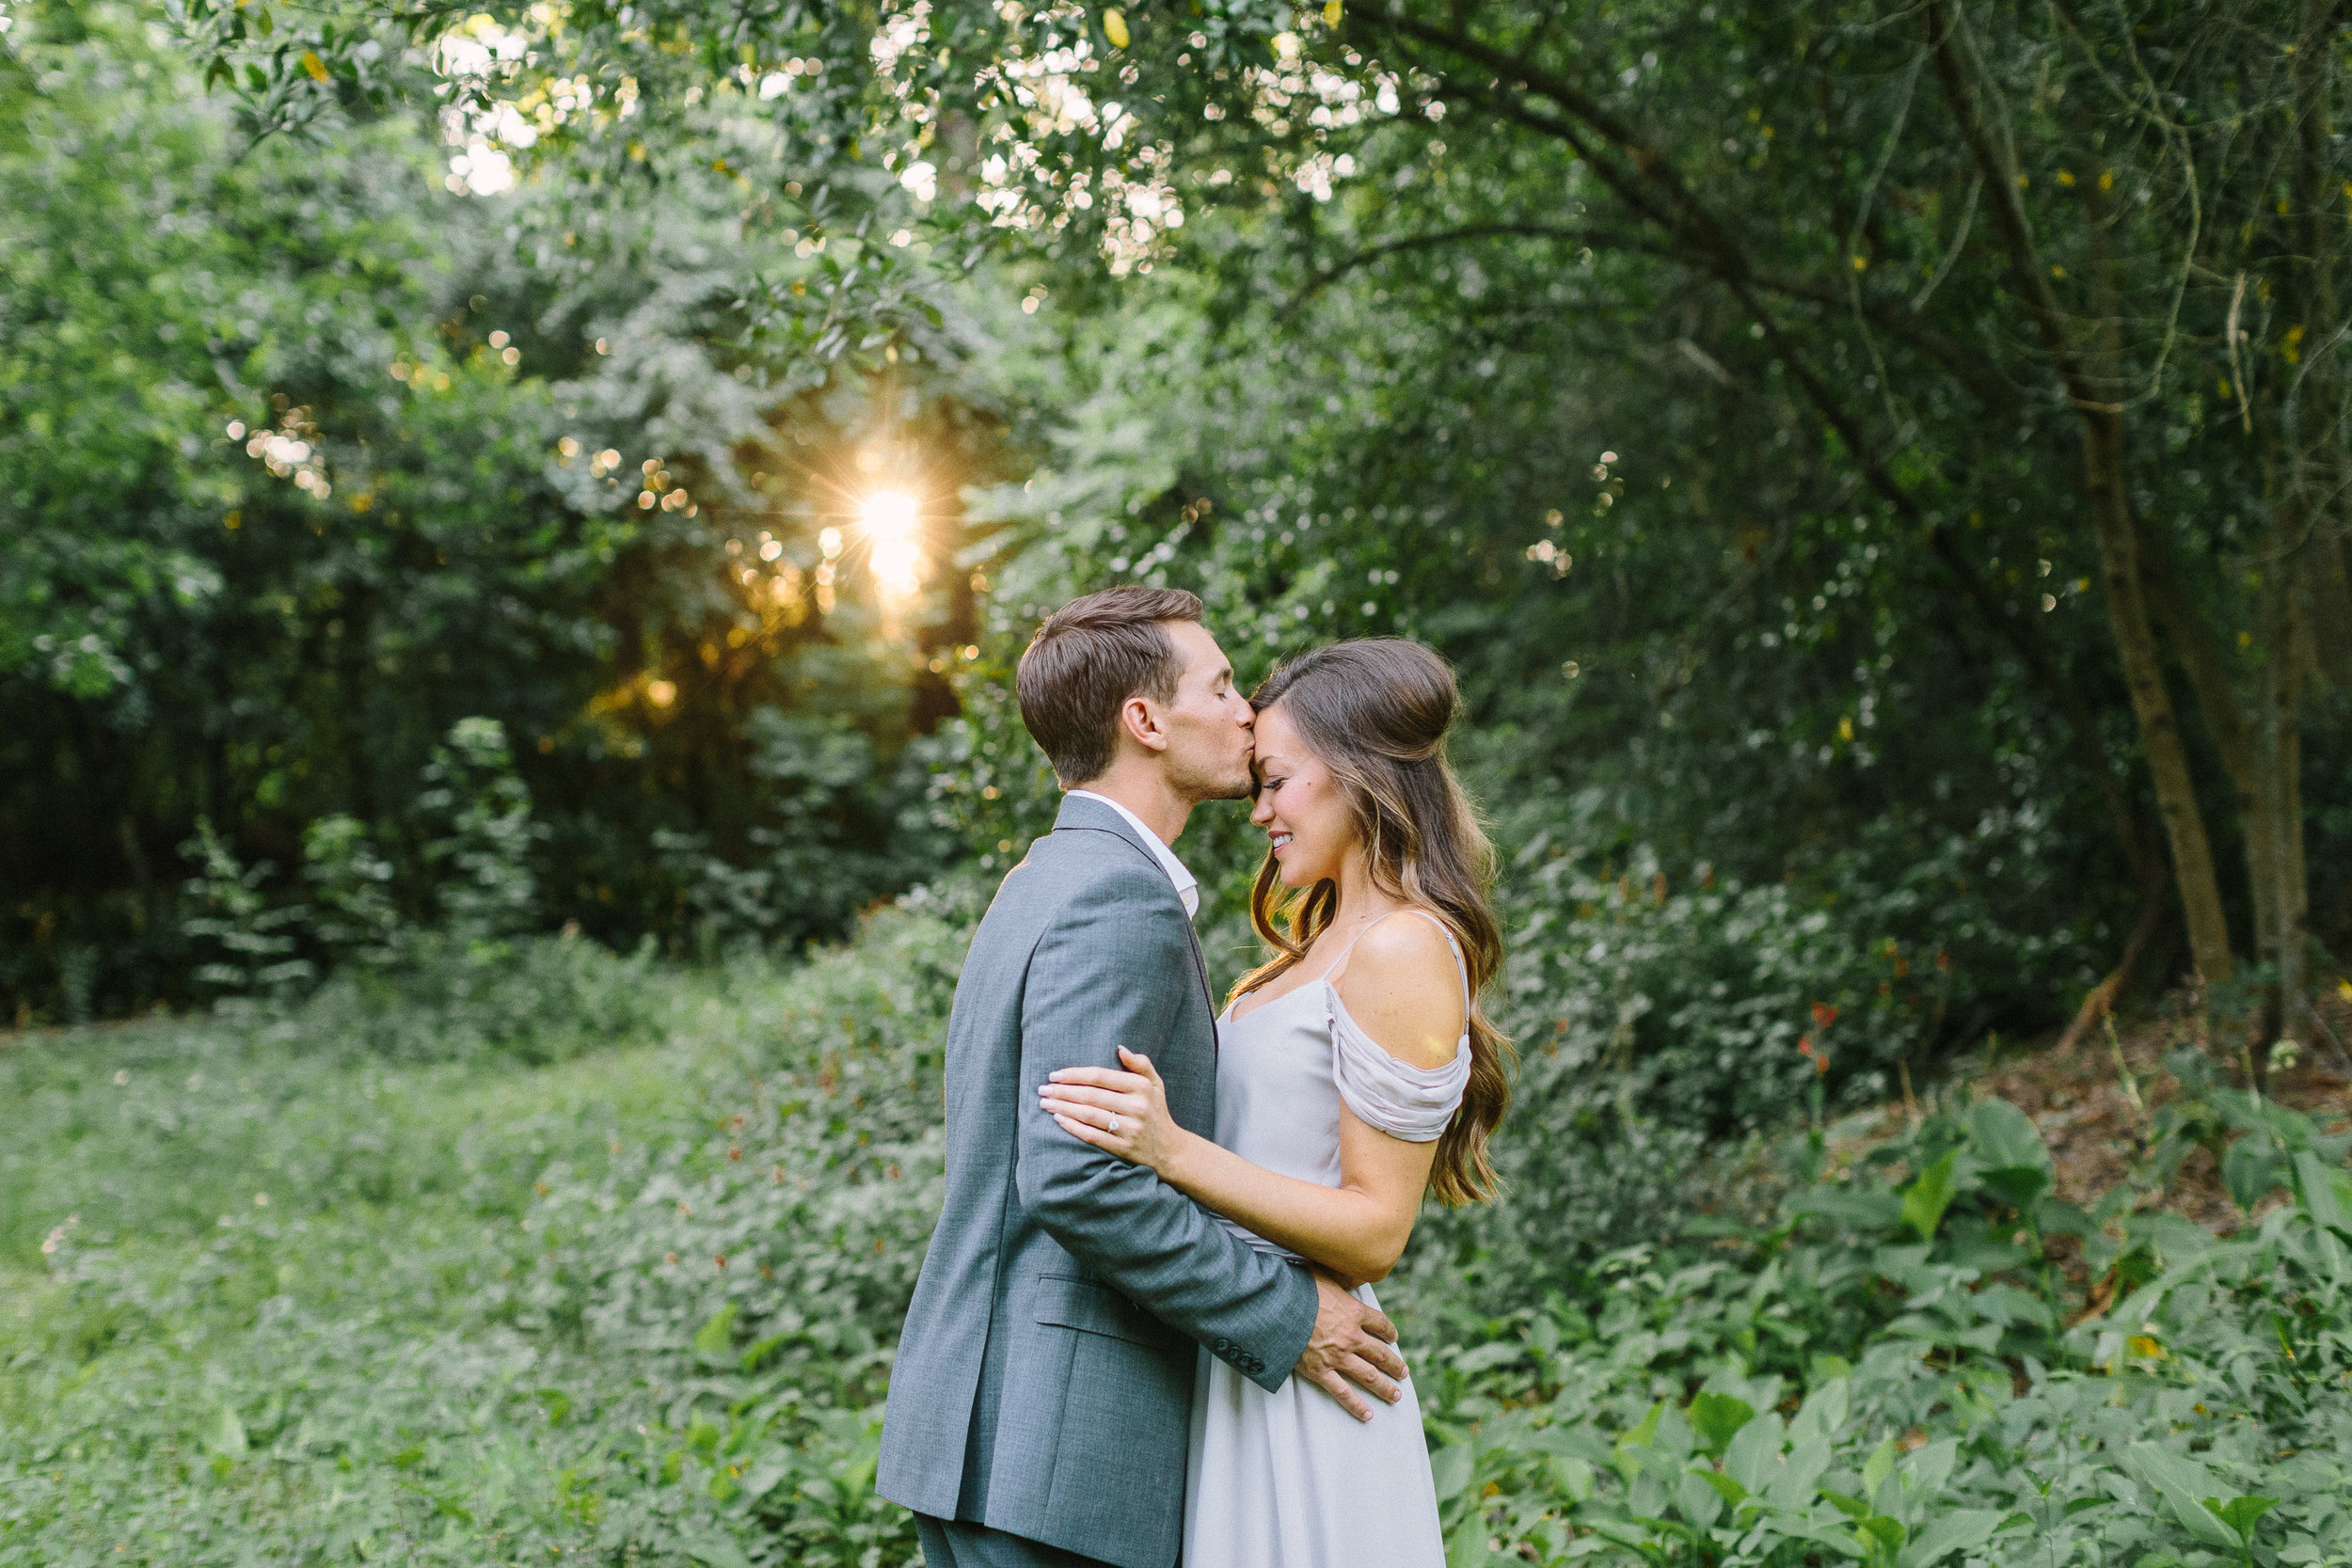 Ellen-Ashton-Photography-Dallas-Wedding-Photographer-Dallas-Wedding-Planner-Austin-Wedding-Photographer-Houston-Wedding-Photographer-Farmhouse-Weddings-Mongomery-Texas-Paris-Wedding-Photographer-Denver-Wedding-Photographer-New-England-Wedding-Photographer